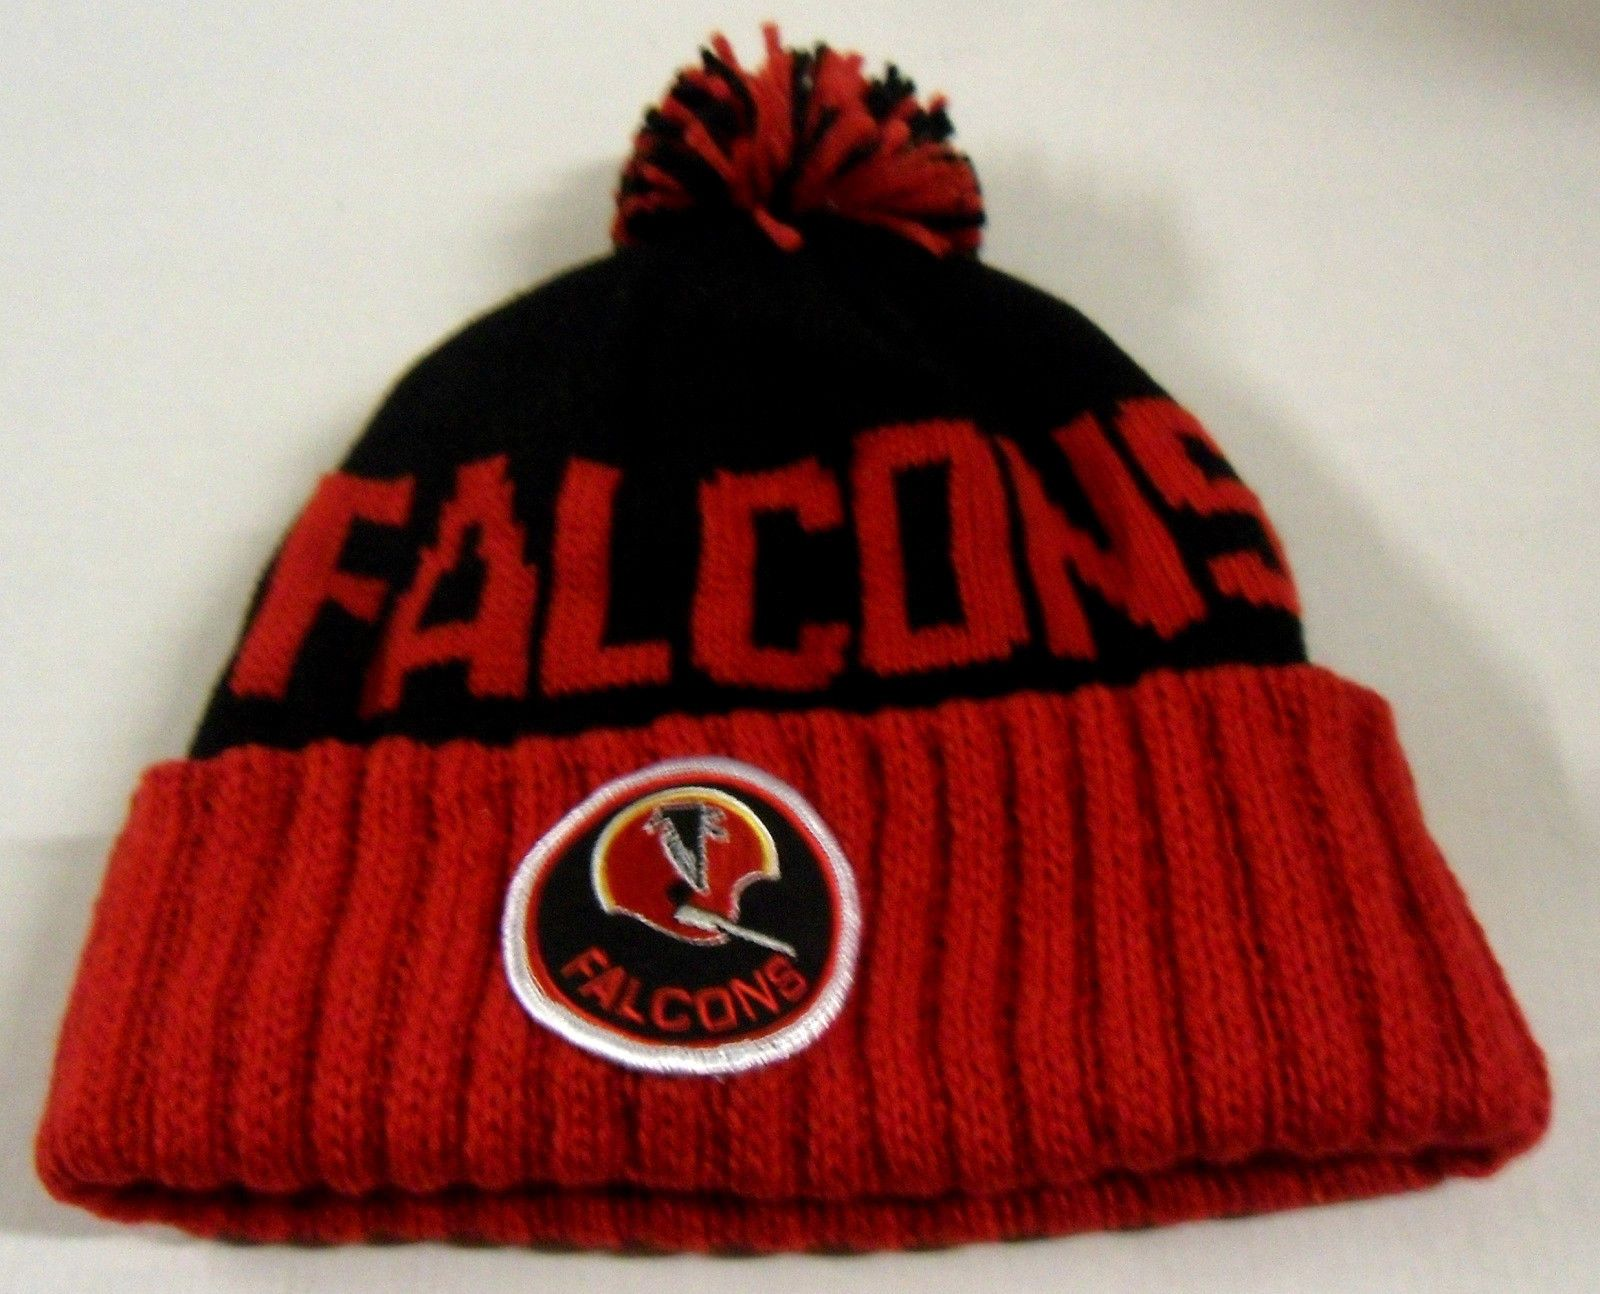 334bb0a6eeafac Nwt Nfl Atlanta Falcons Mitchell & Ness Throwback Pom Cuffed Knit Hat  Beanie Cap NWT NFL